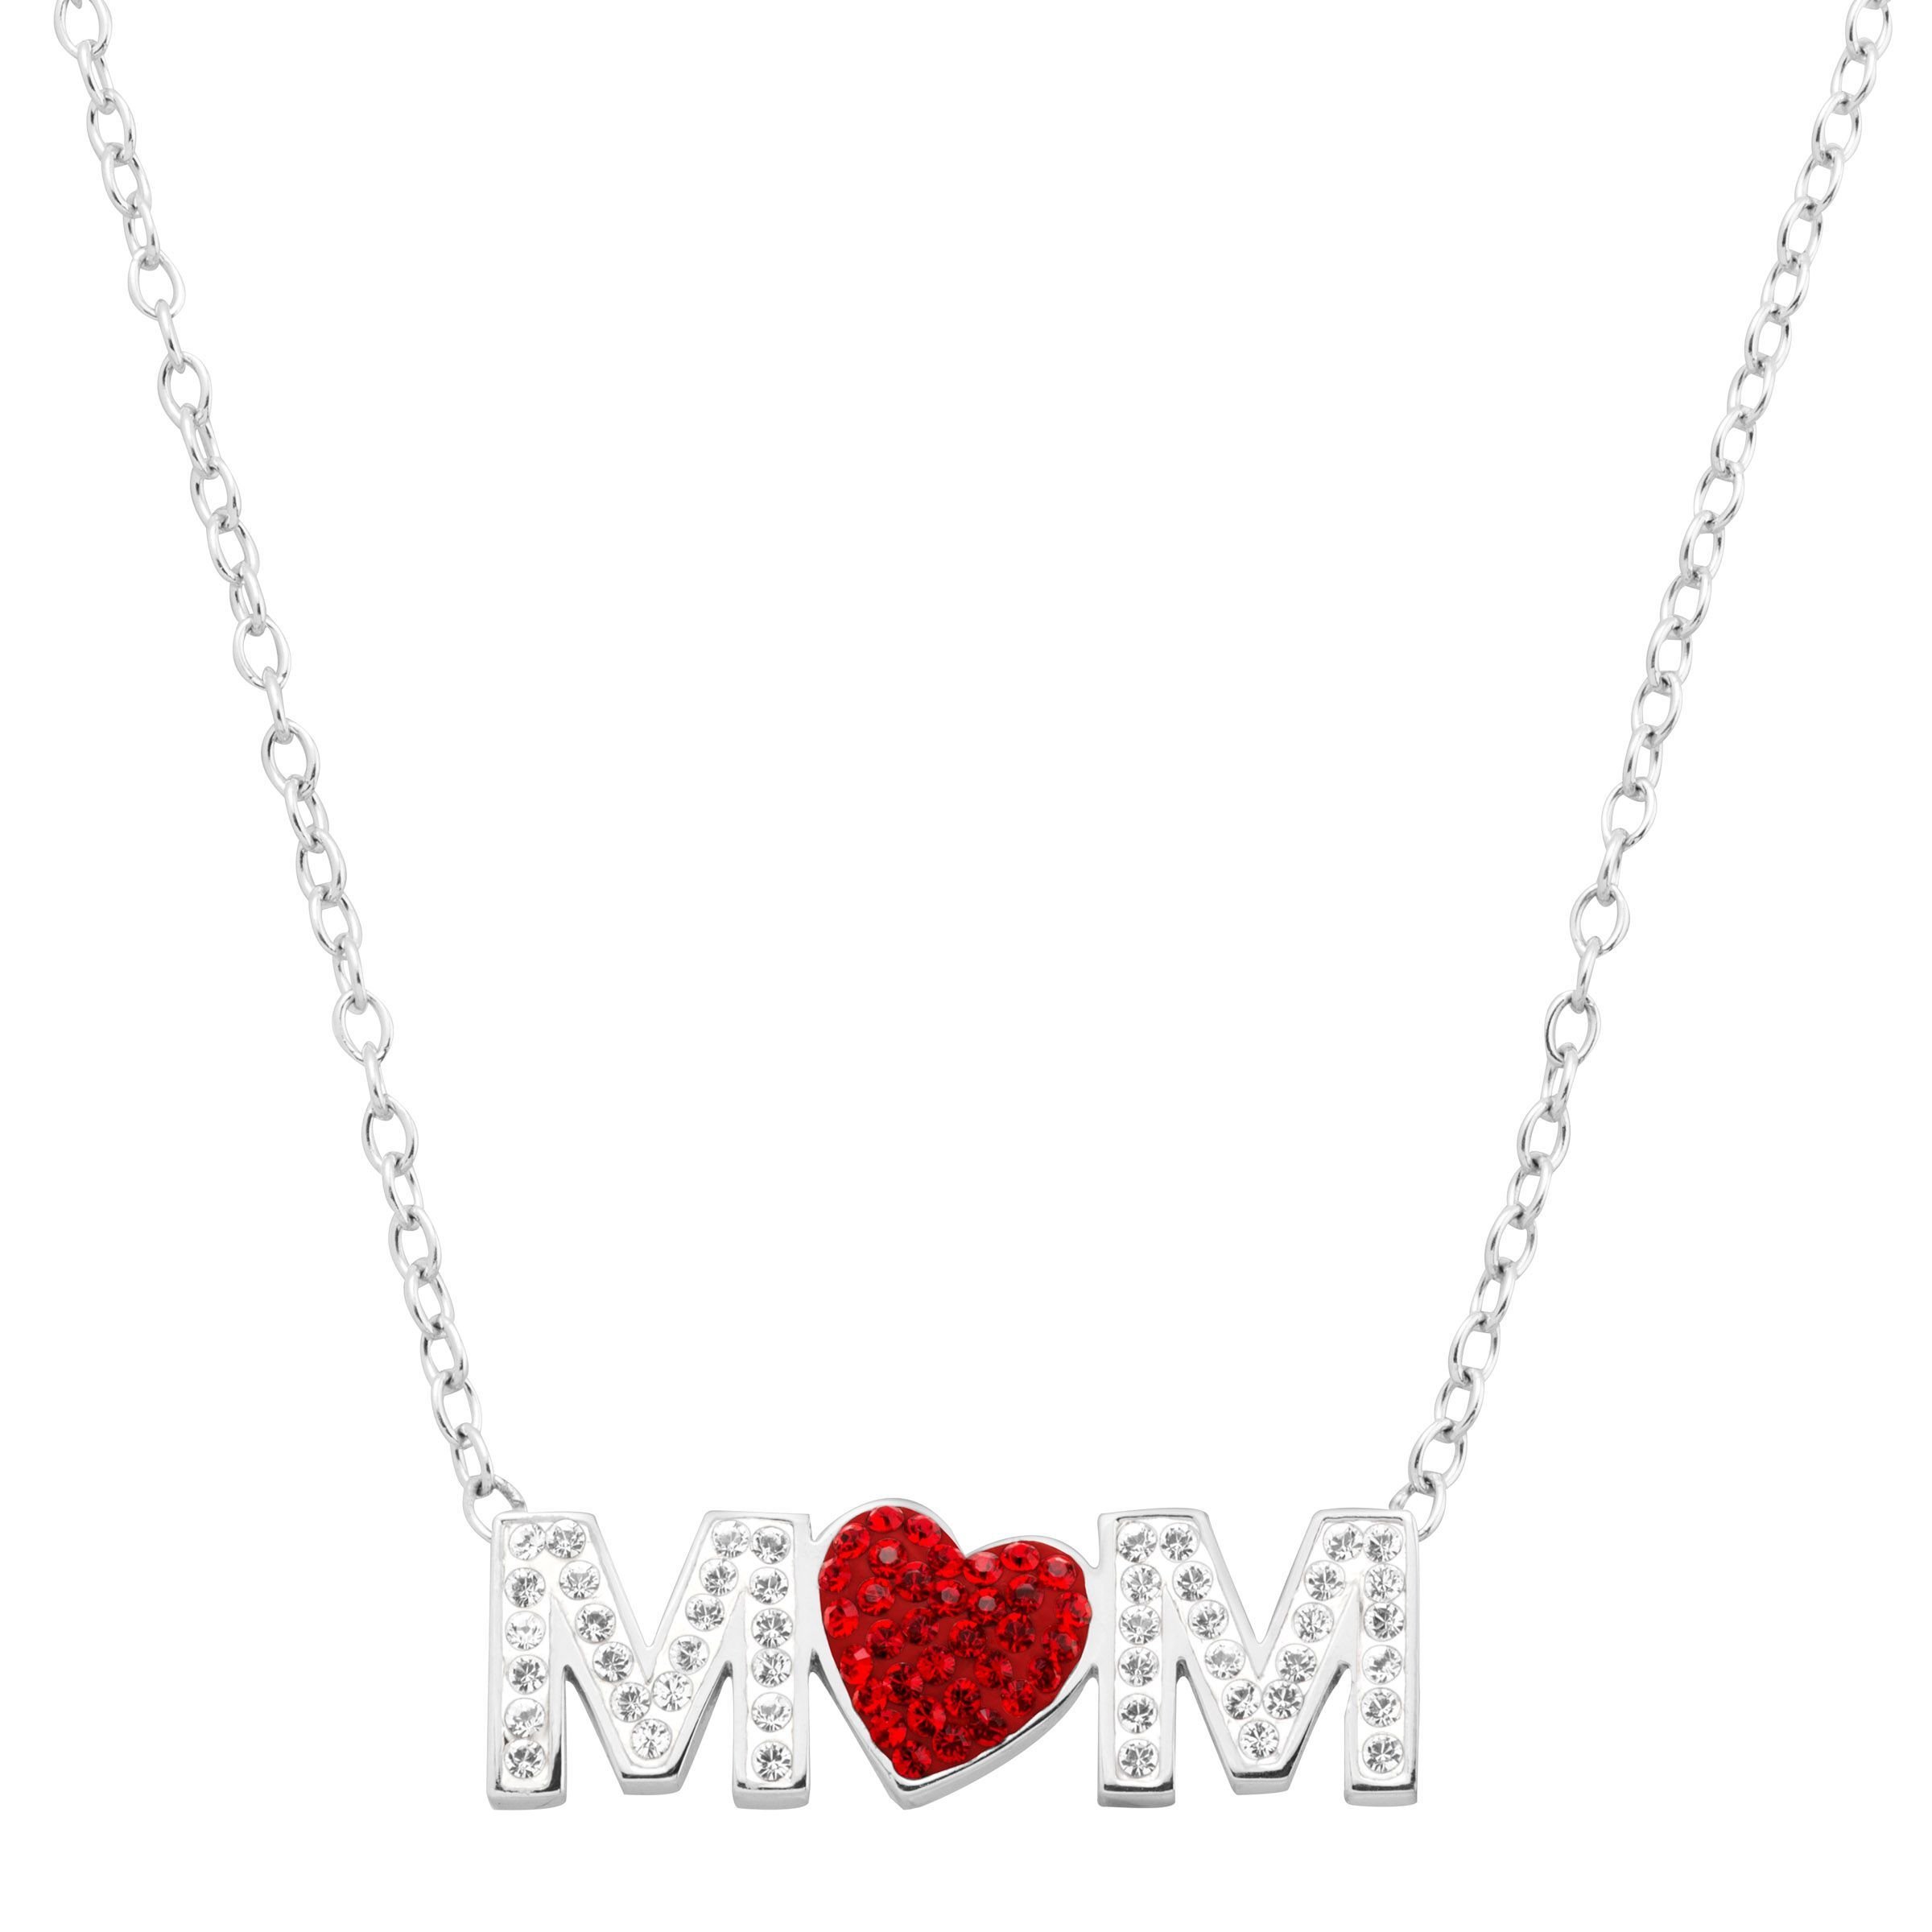 necklace river elisa c ilana necklaces mzcb petra azar heart red love of